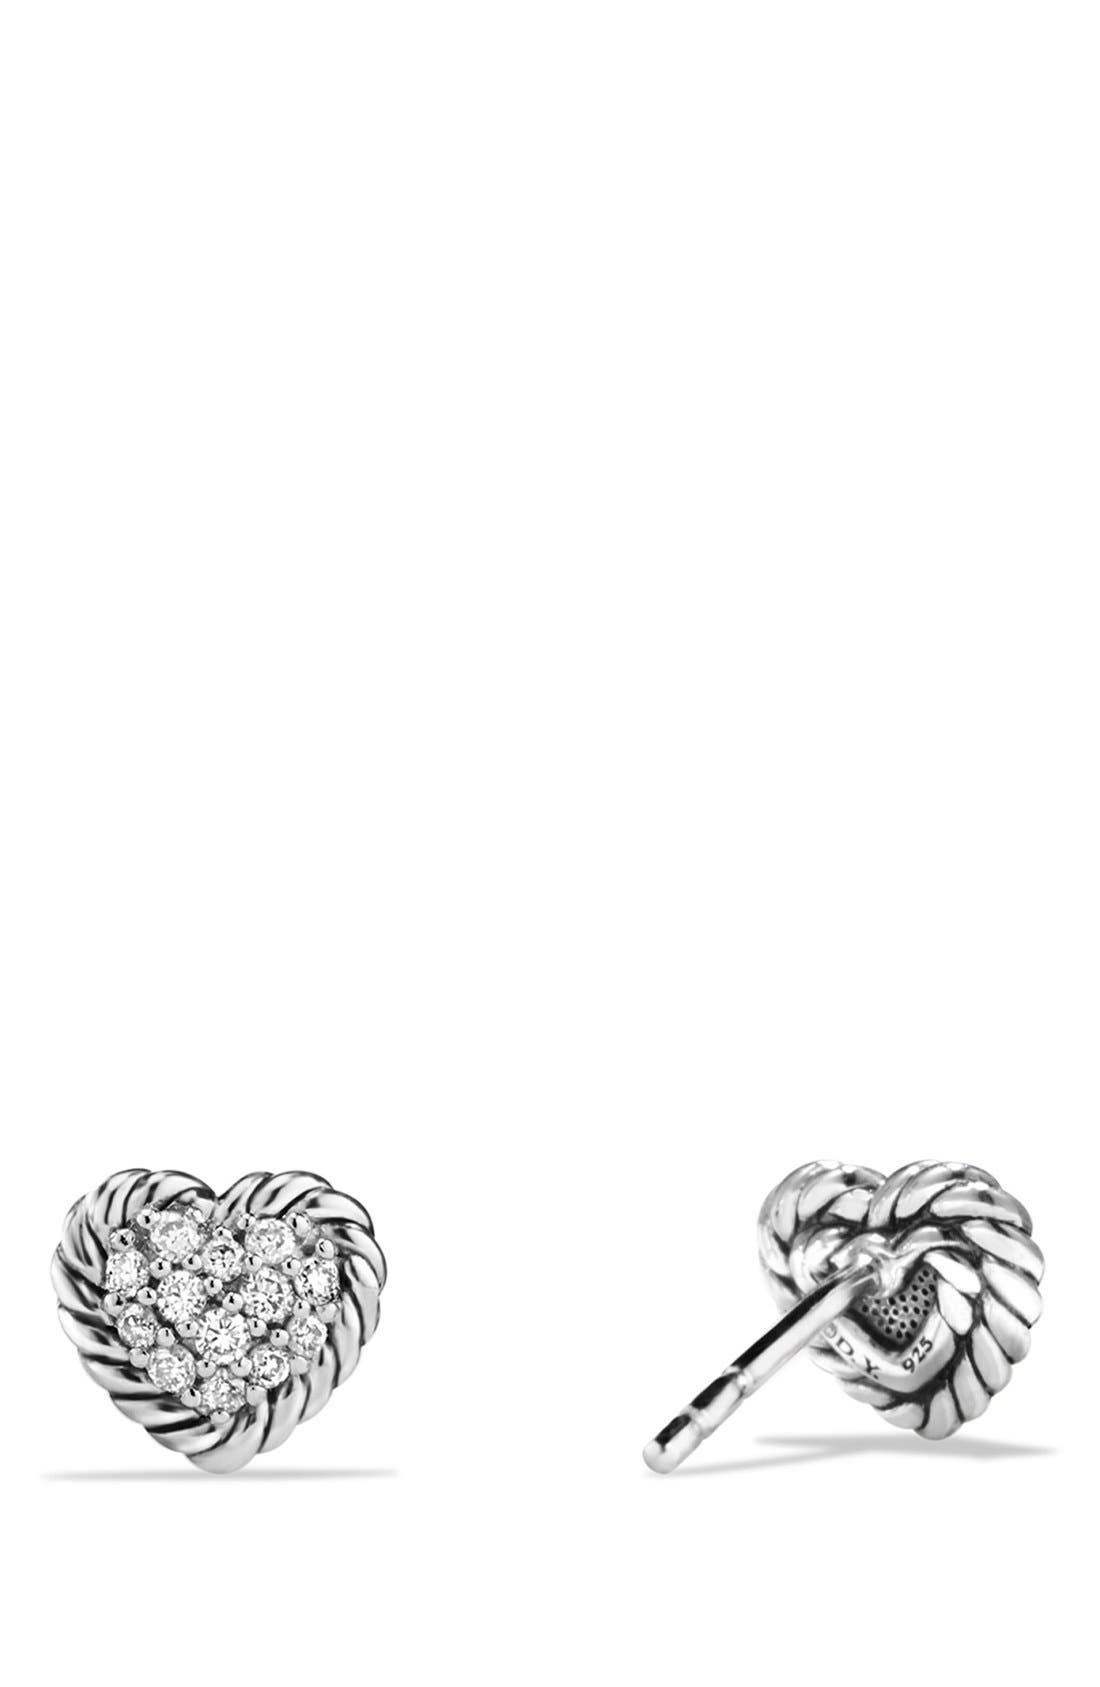 'Châtelaine' Heart Earrings with Diamonds,                             Alternate thumbnail 2, color,                             Silver